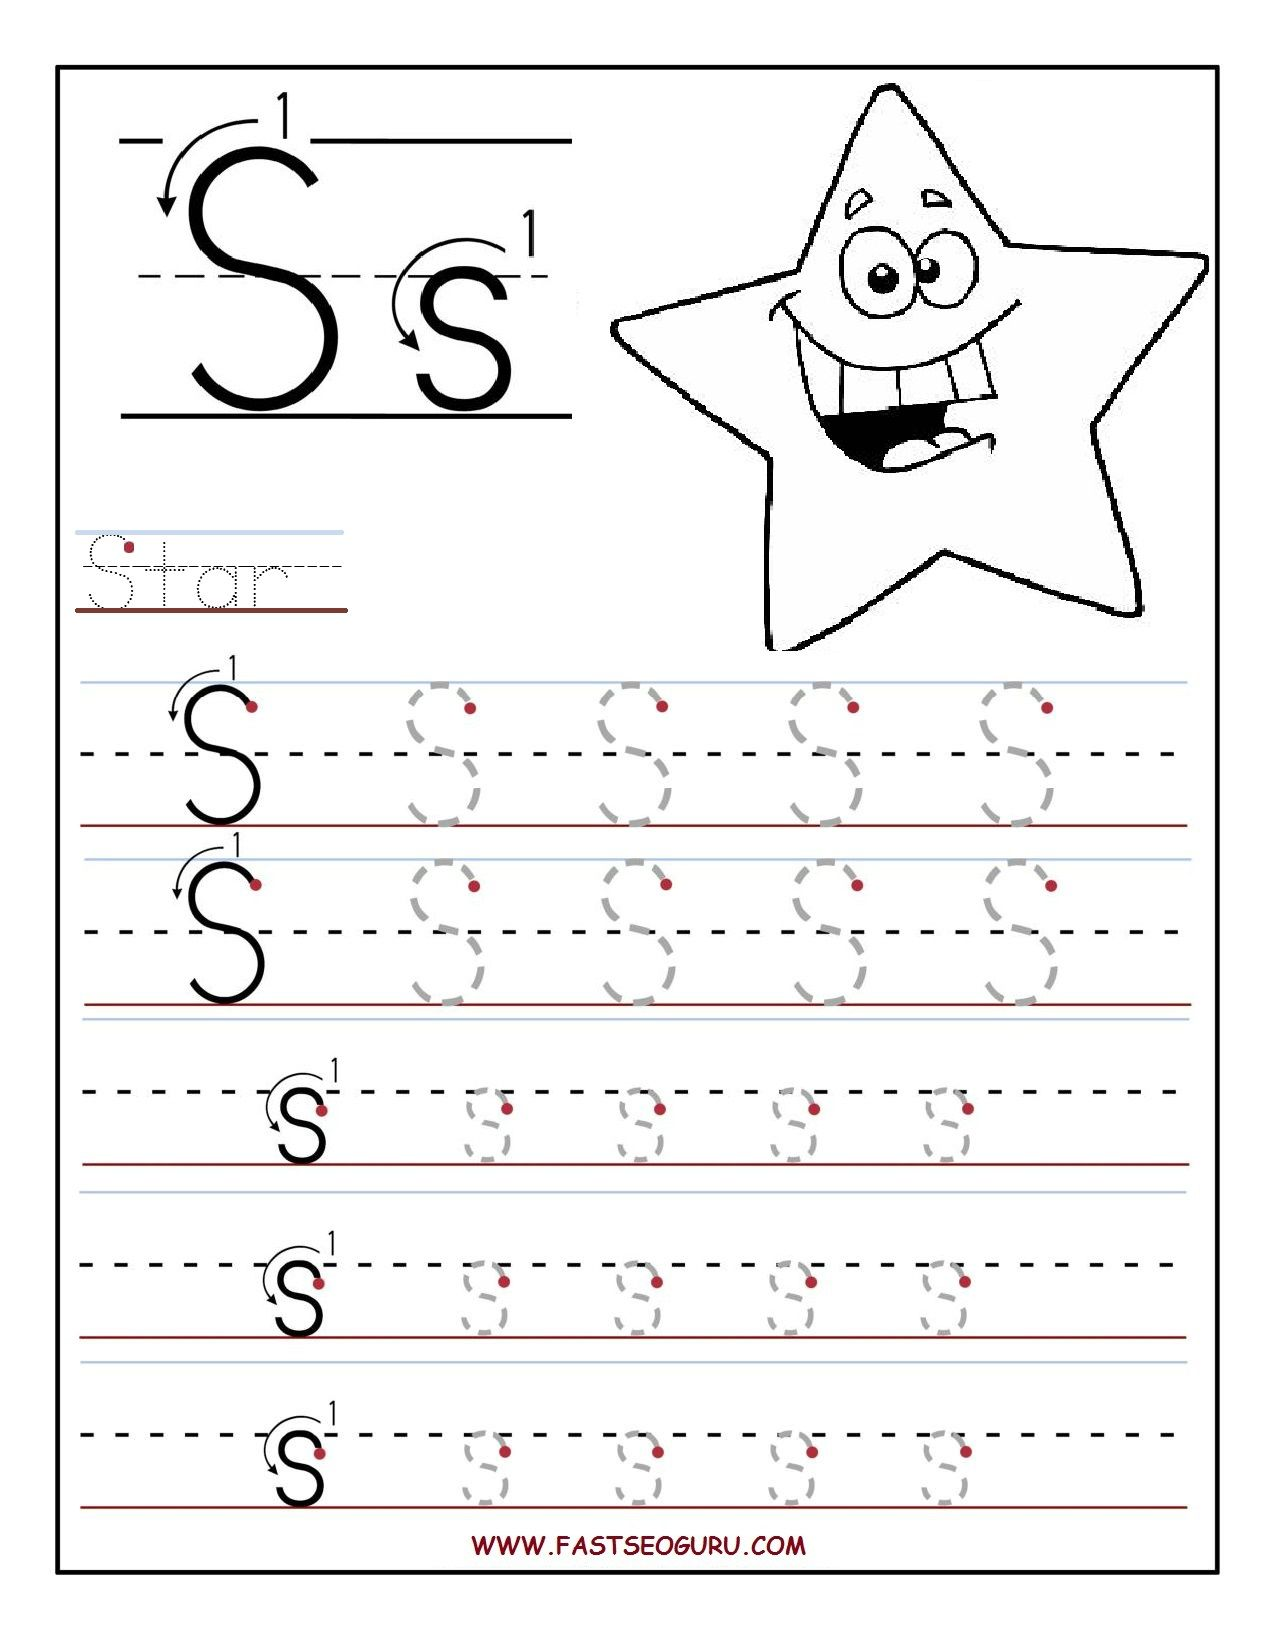 Printable Letter S Tracing Worksheets For Preschool With